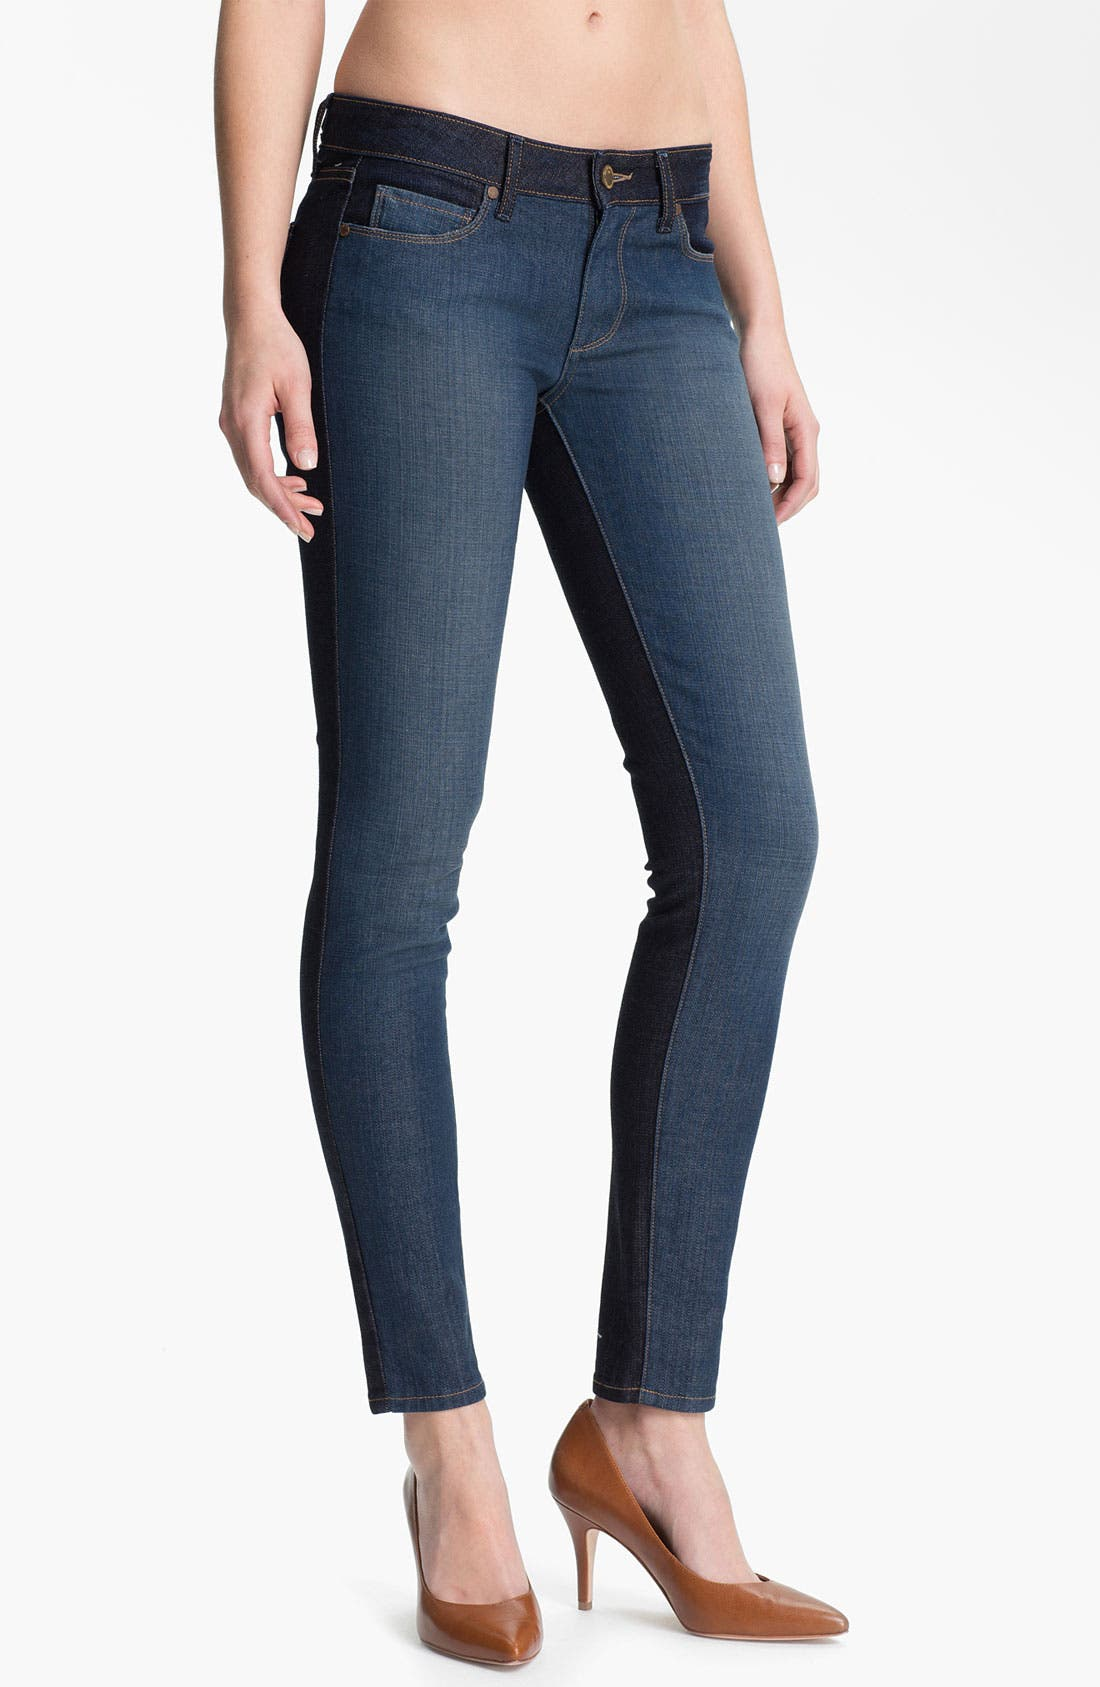 Alternate Image 1 Selected - Paige Denim 'Emily' Two Tone Ultra Skinny Jeans (Kala)